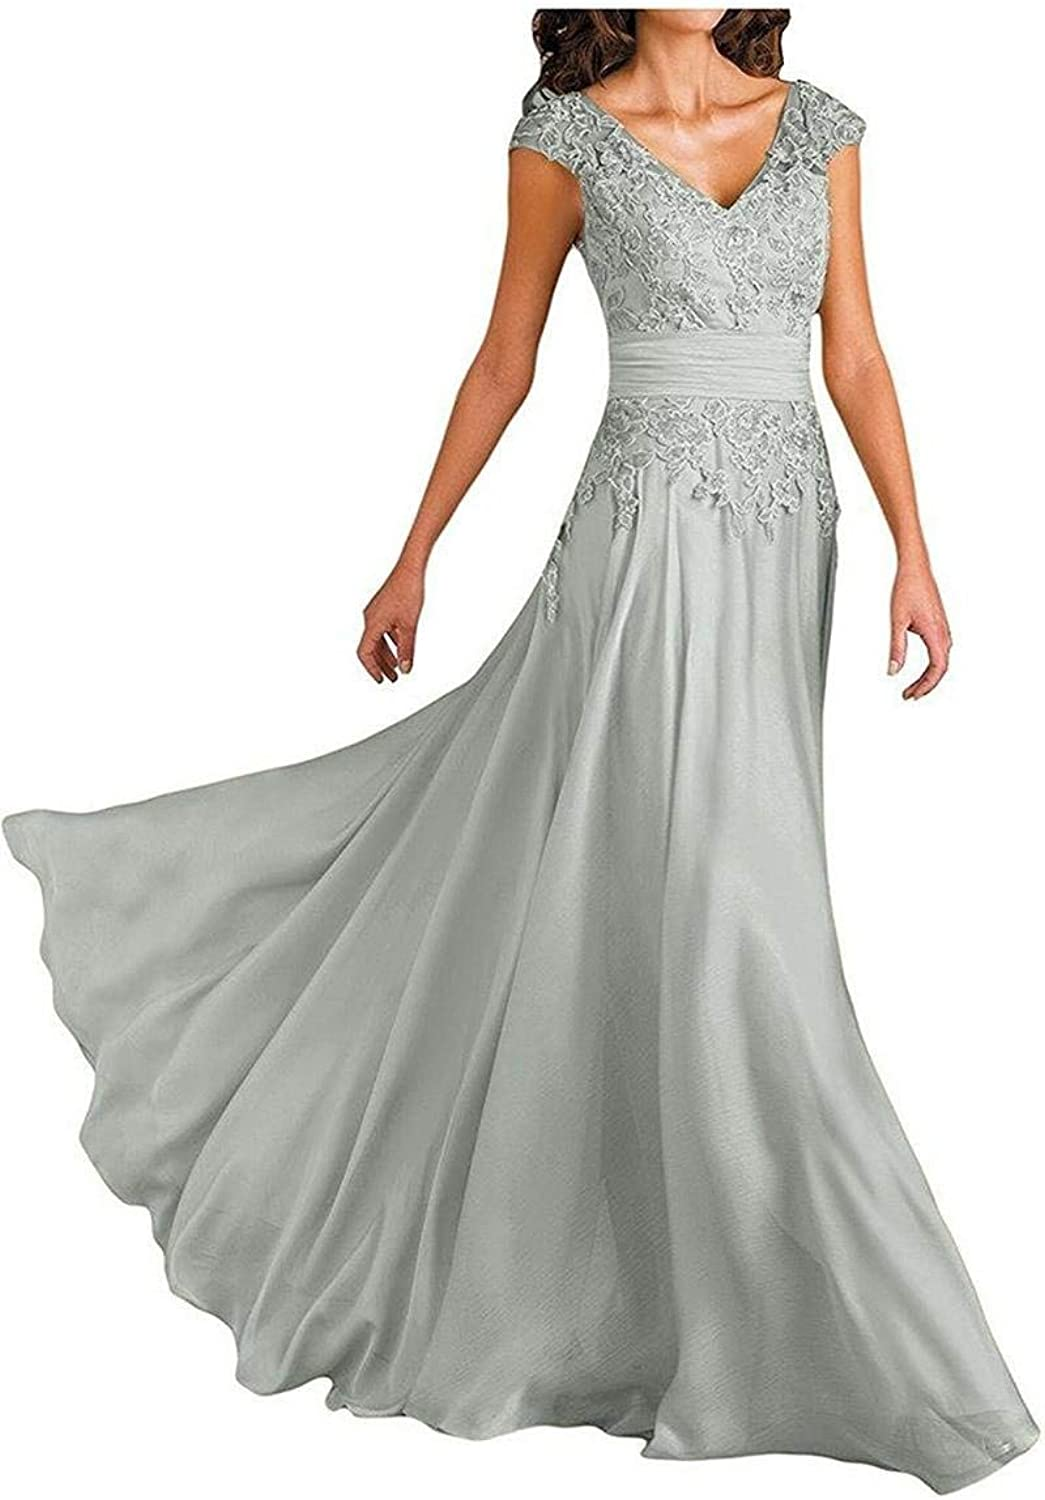 Women's Sexy VNeck Lace Applique Mother of The Bride Dresses Long Formal Evening Gown